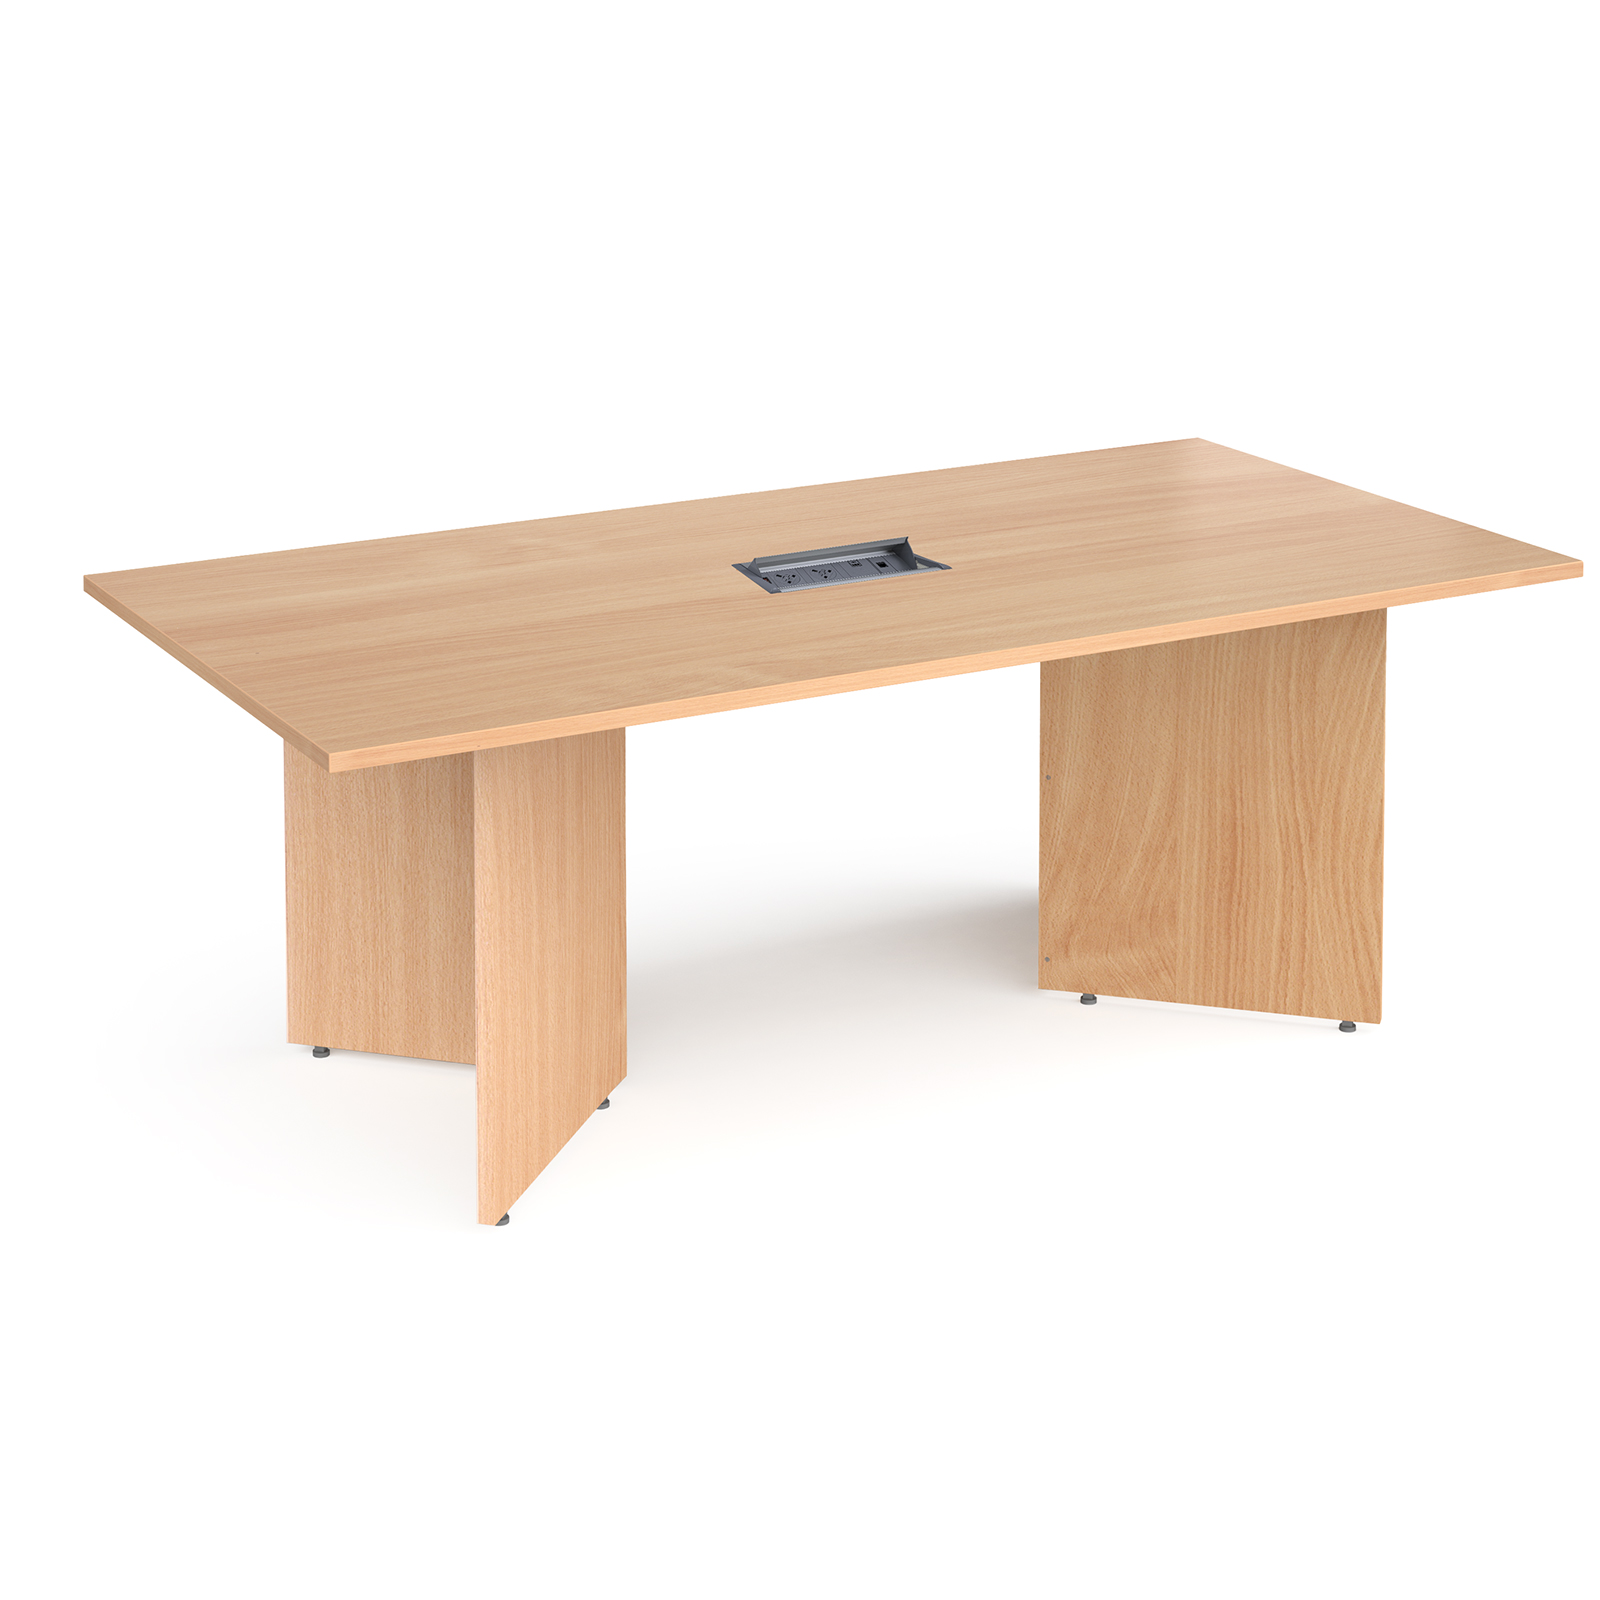 Boardroom / Meeting Arrow head leg rectangular boardroom table 2000mm x 1000mm in beech with central cutout and Aero power module